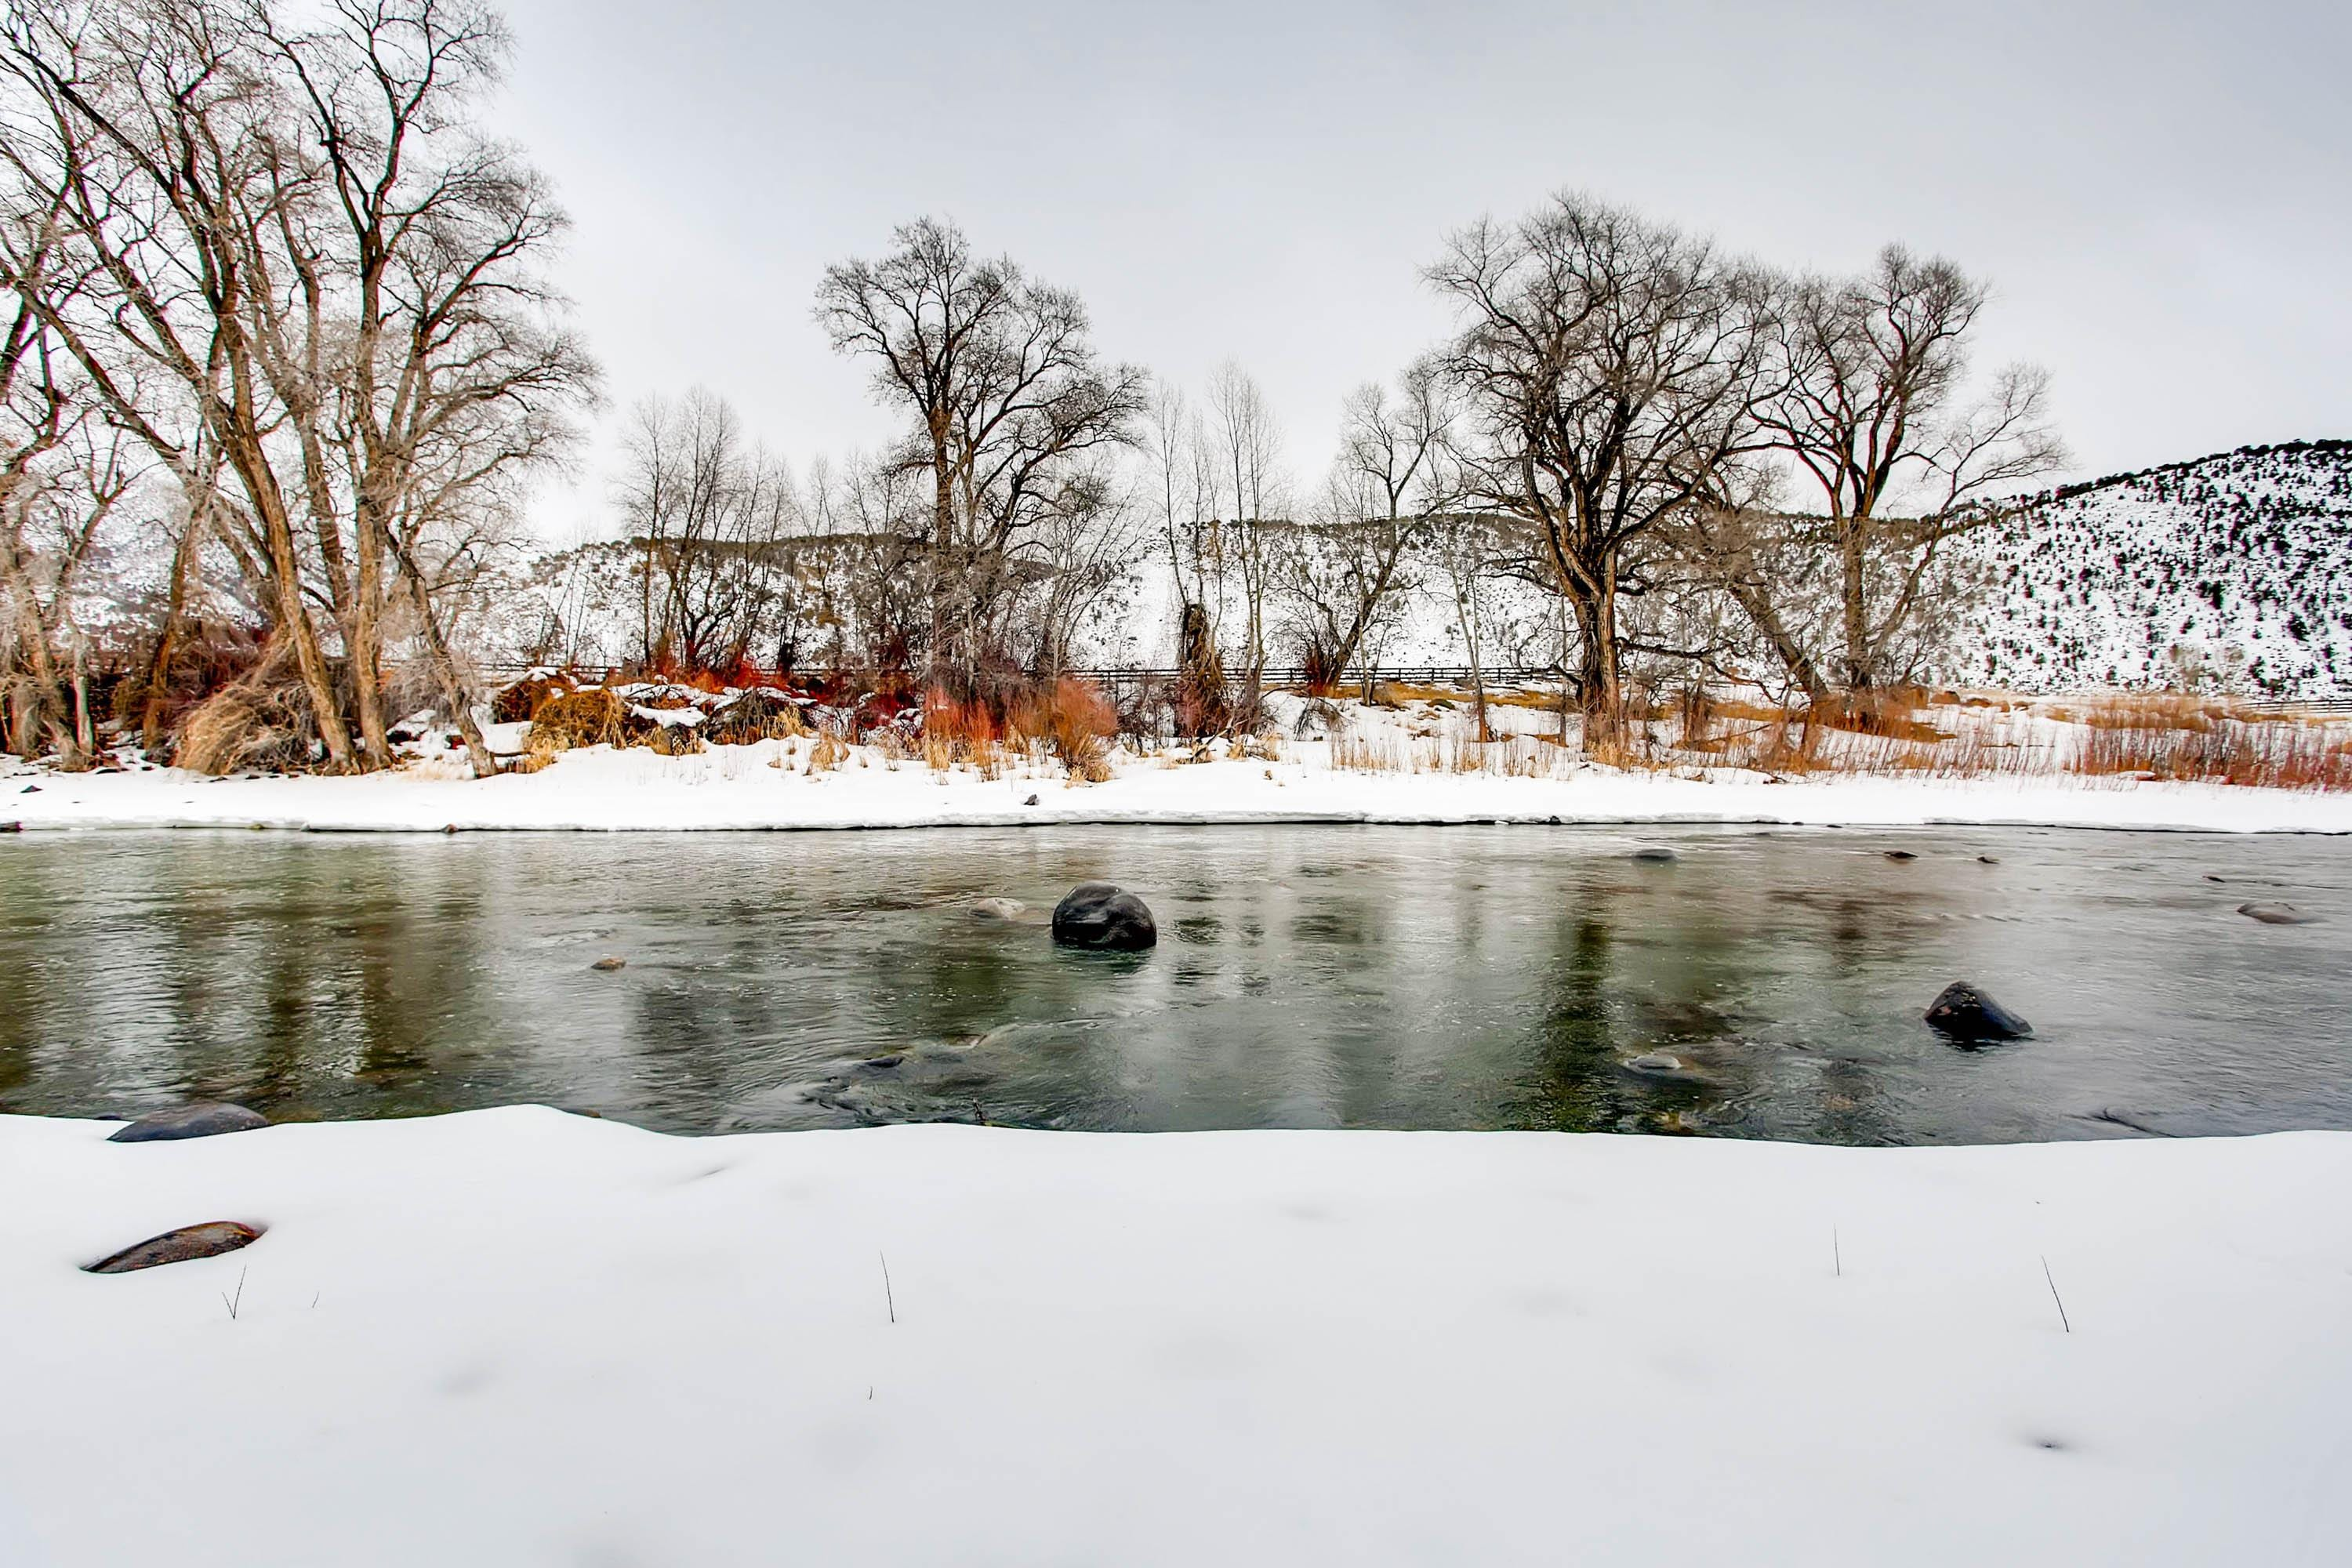 How about a little winter fishing?